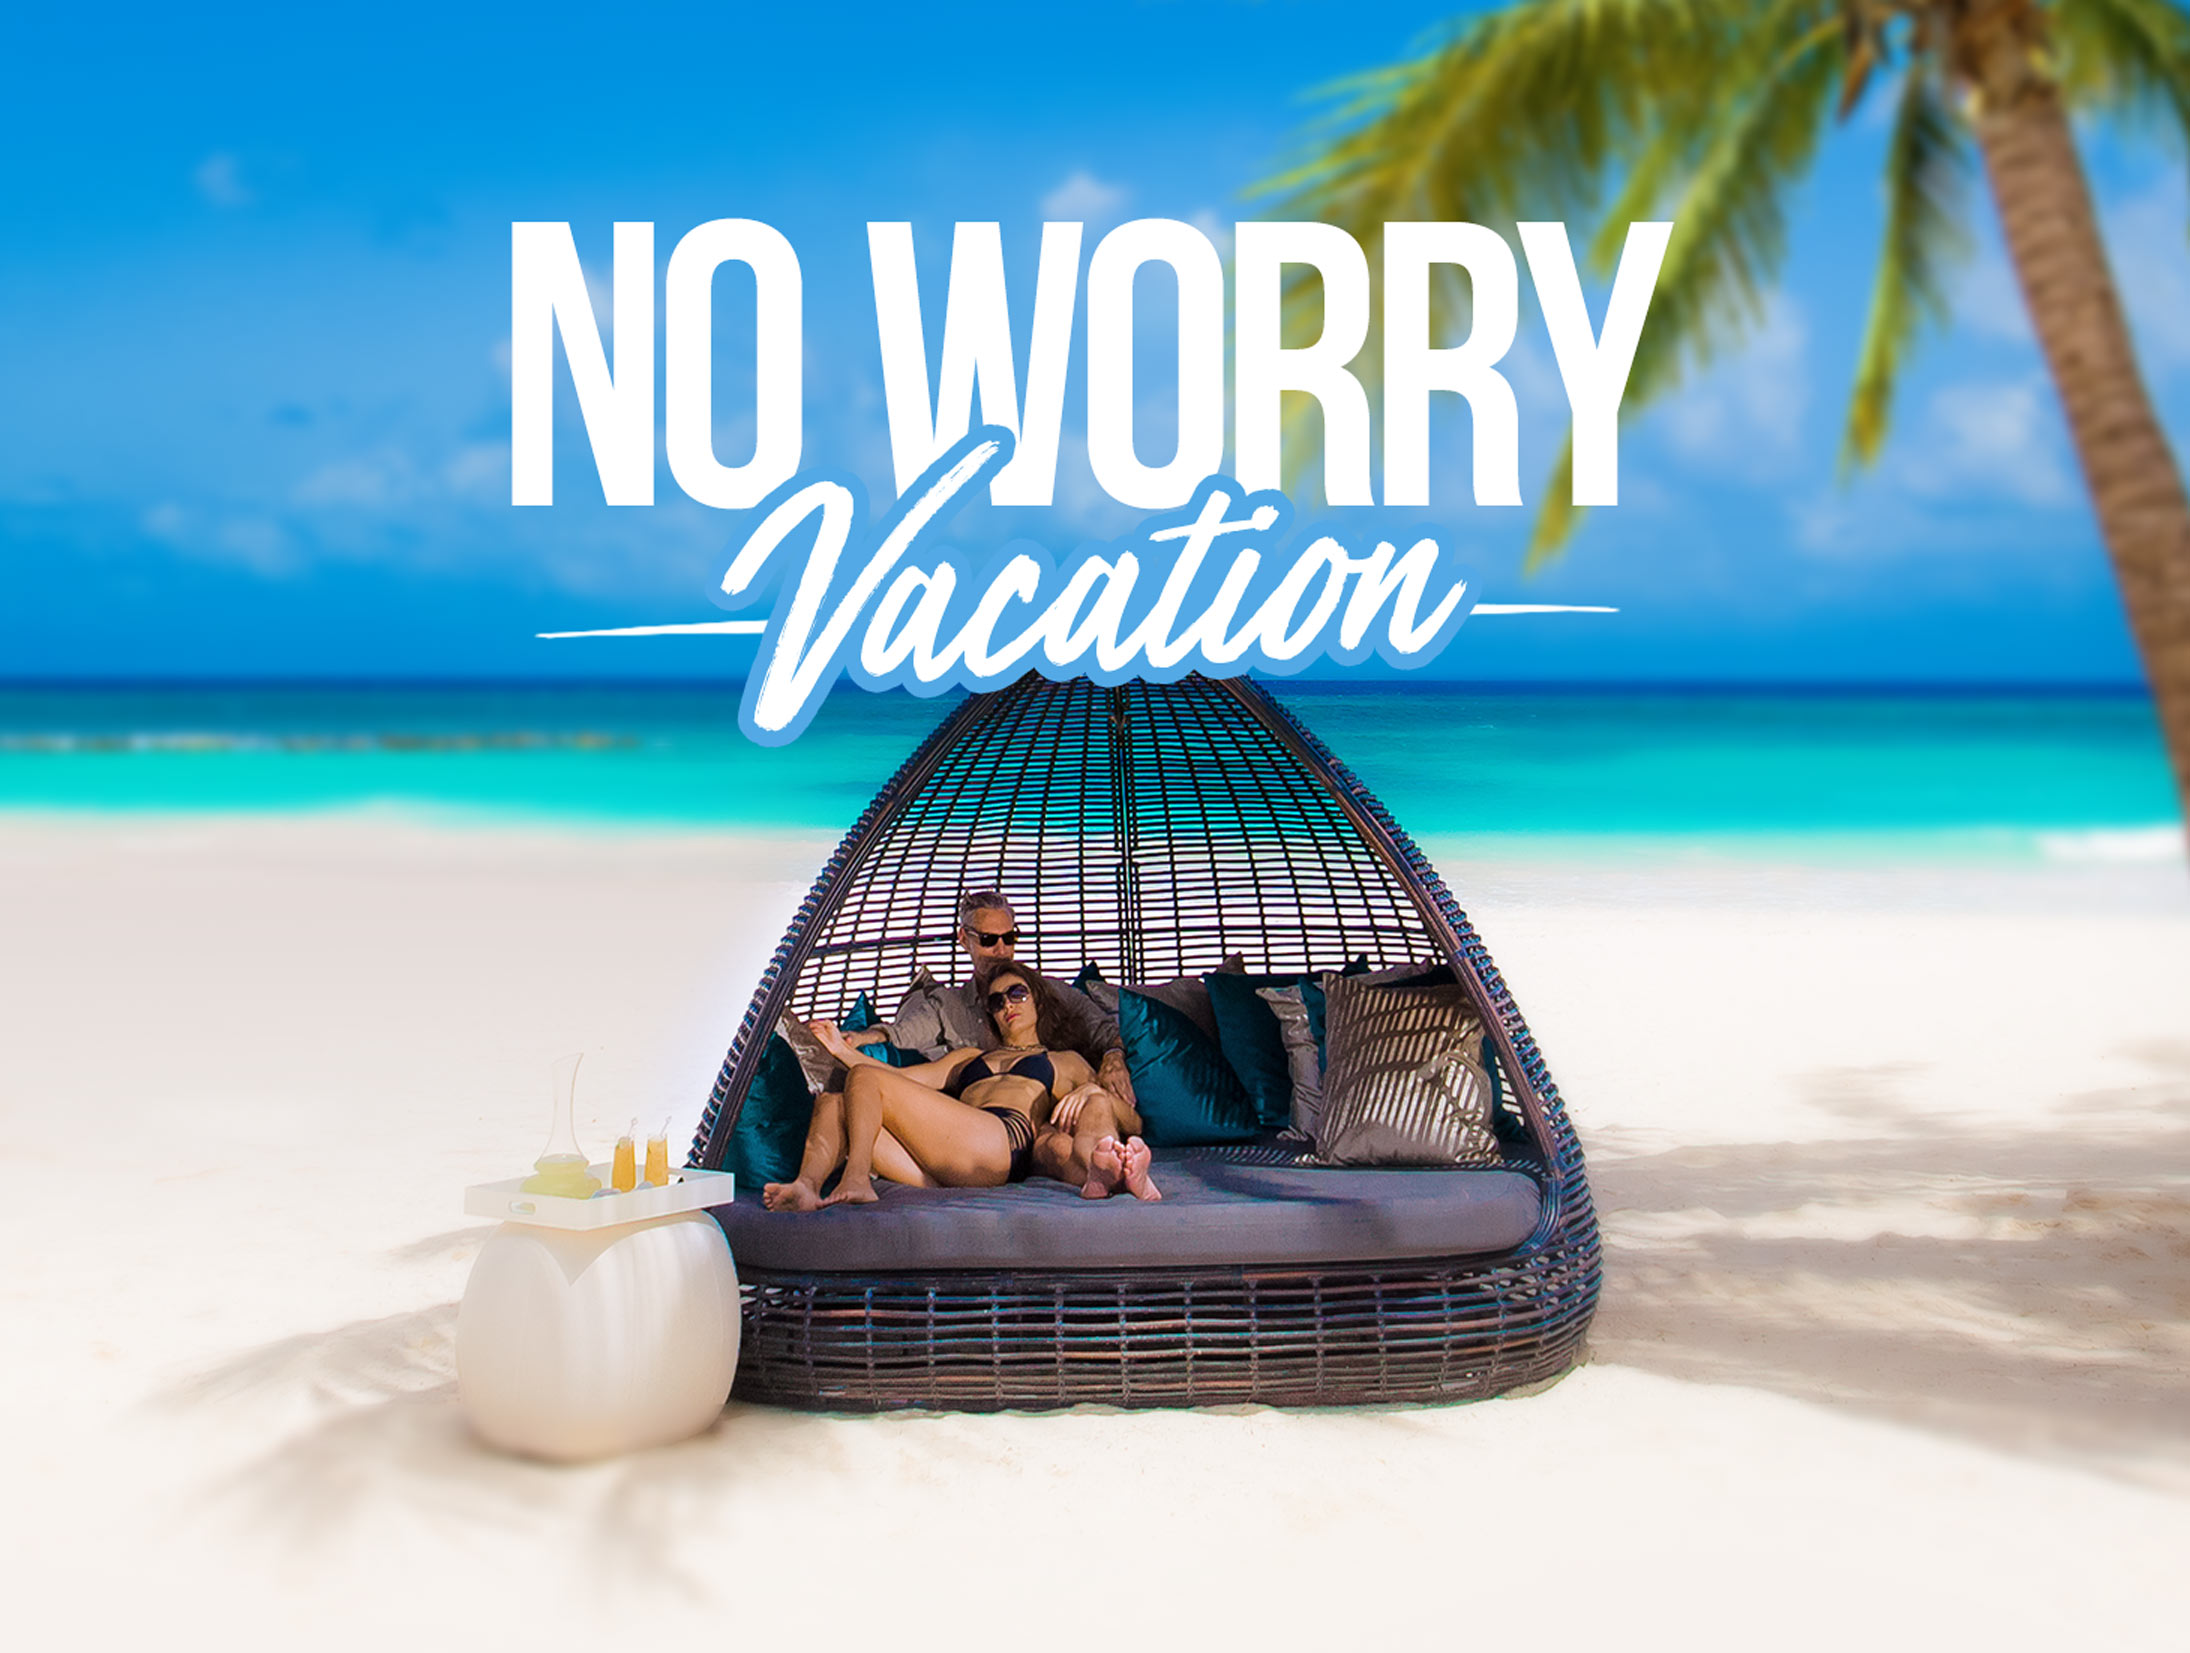 no-worry-vacation-background